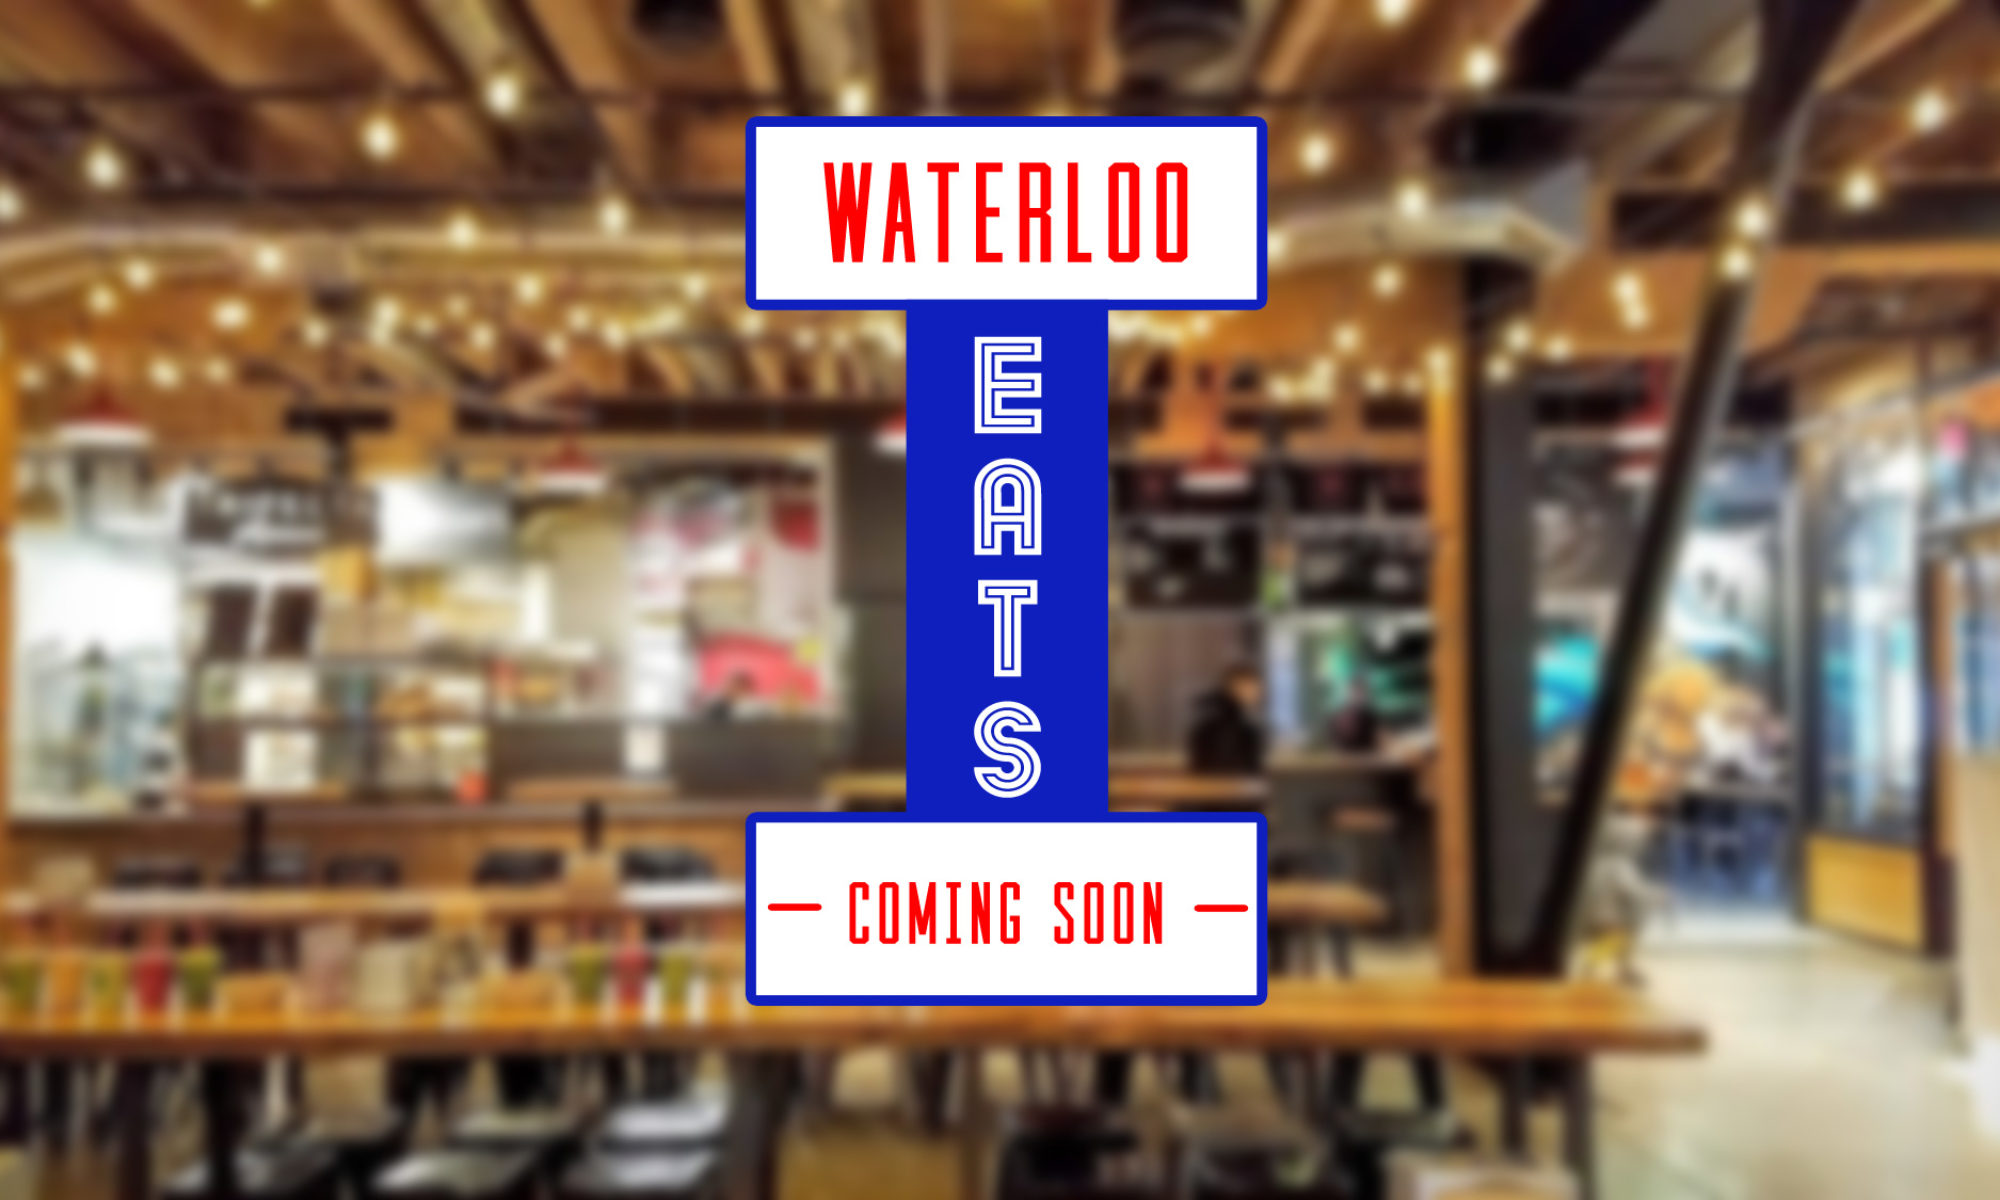 Waterloo Eats